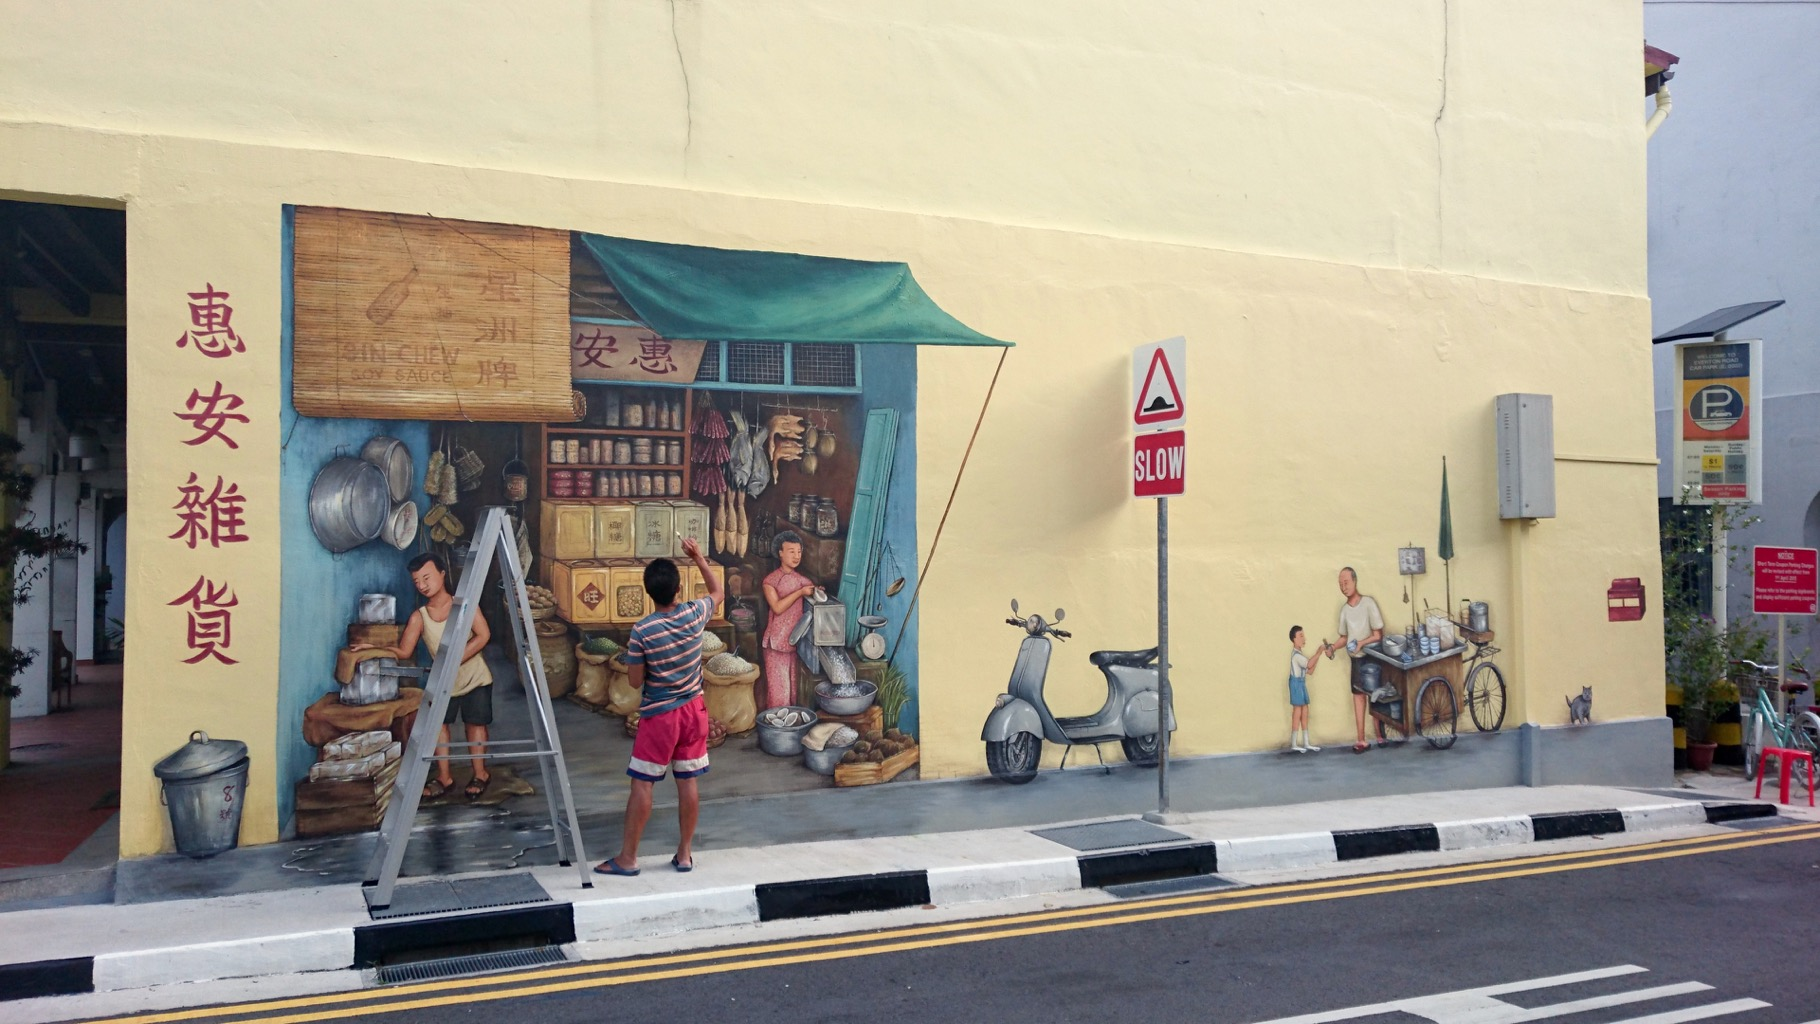 The Story Behind Provision Shop Mural Walkabout With YC - Beautiful street murals appear on roads only when it rains